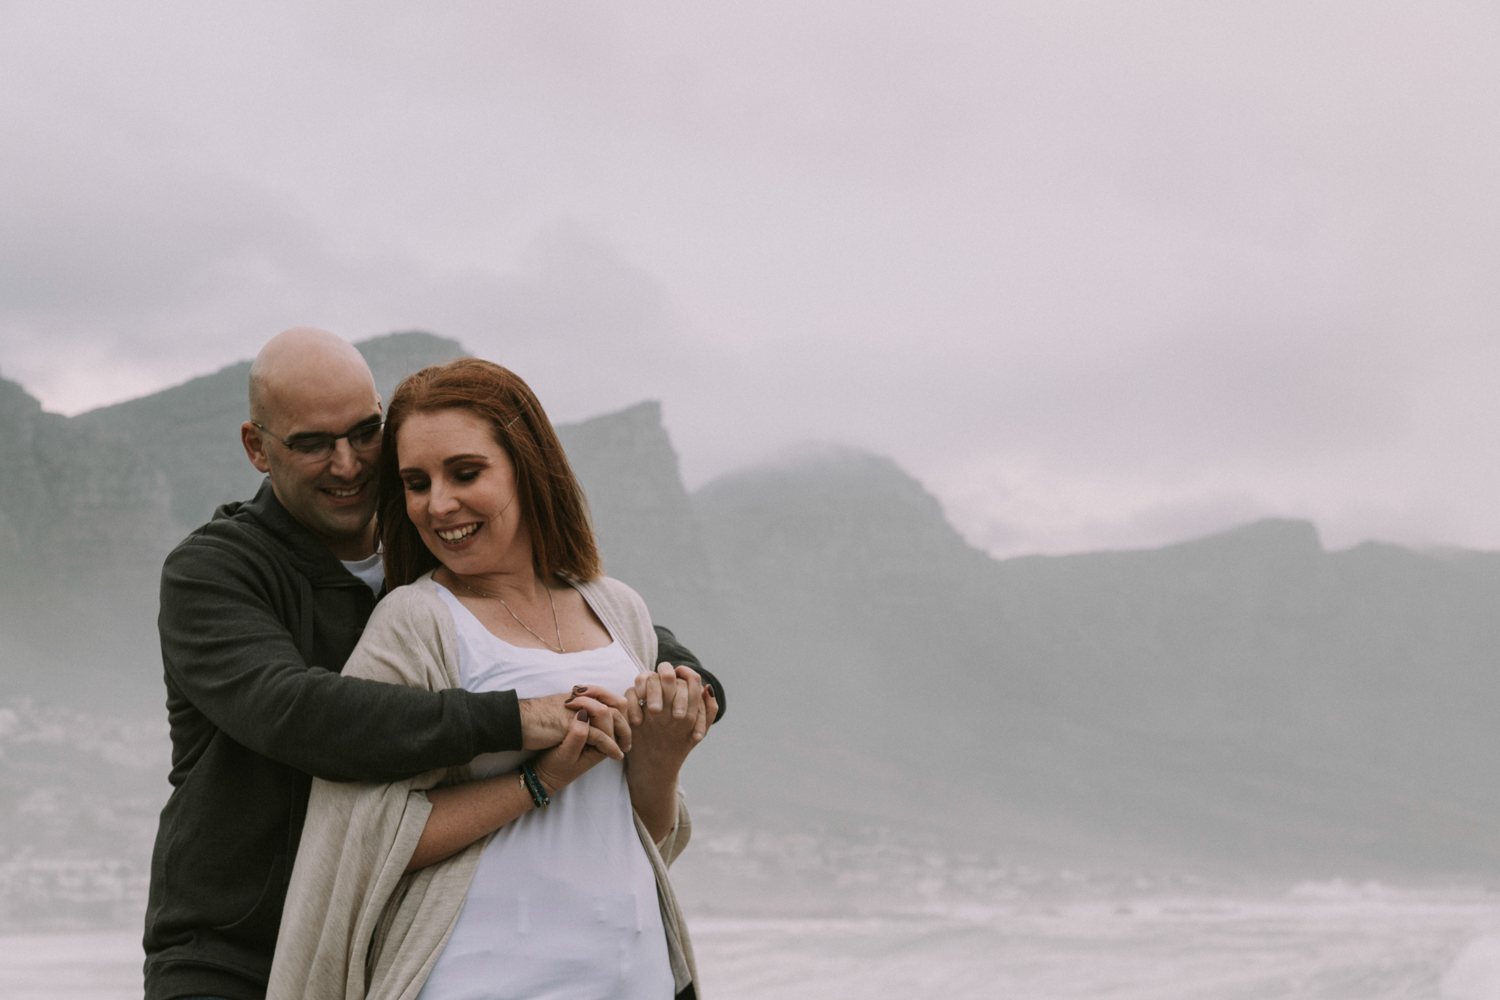 Enagagement photography Cape Town- Bianca Asher Photography-30.jpg